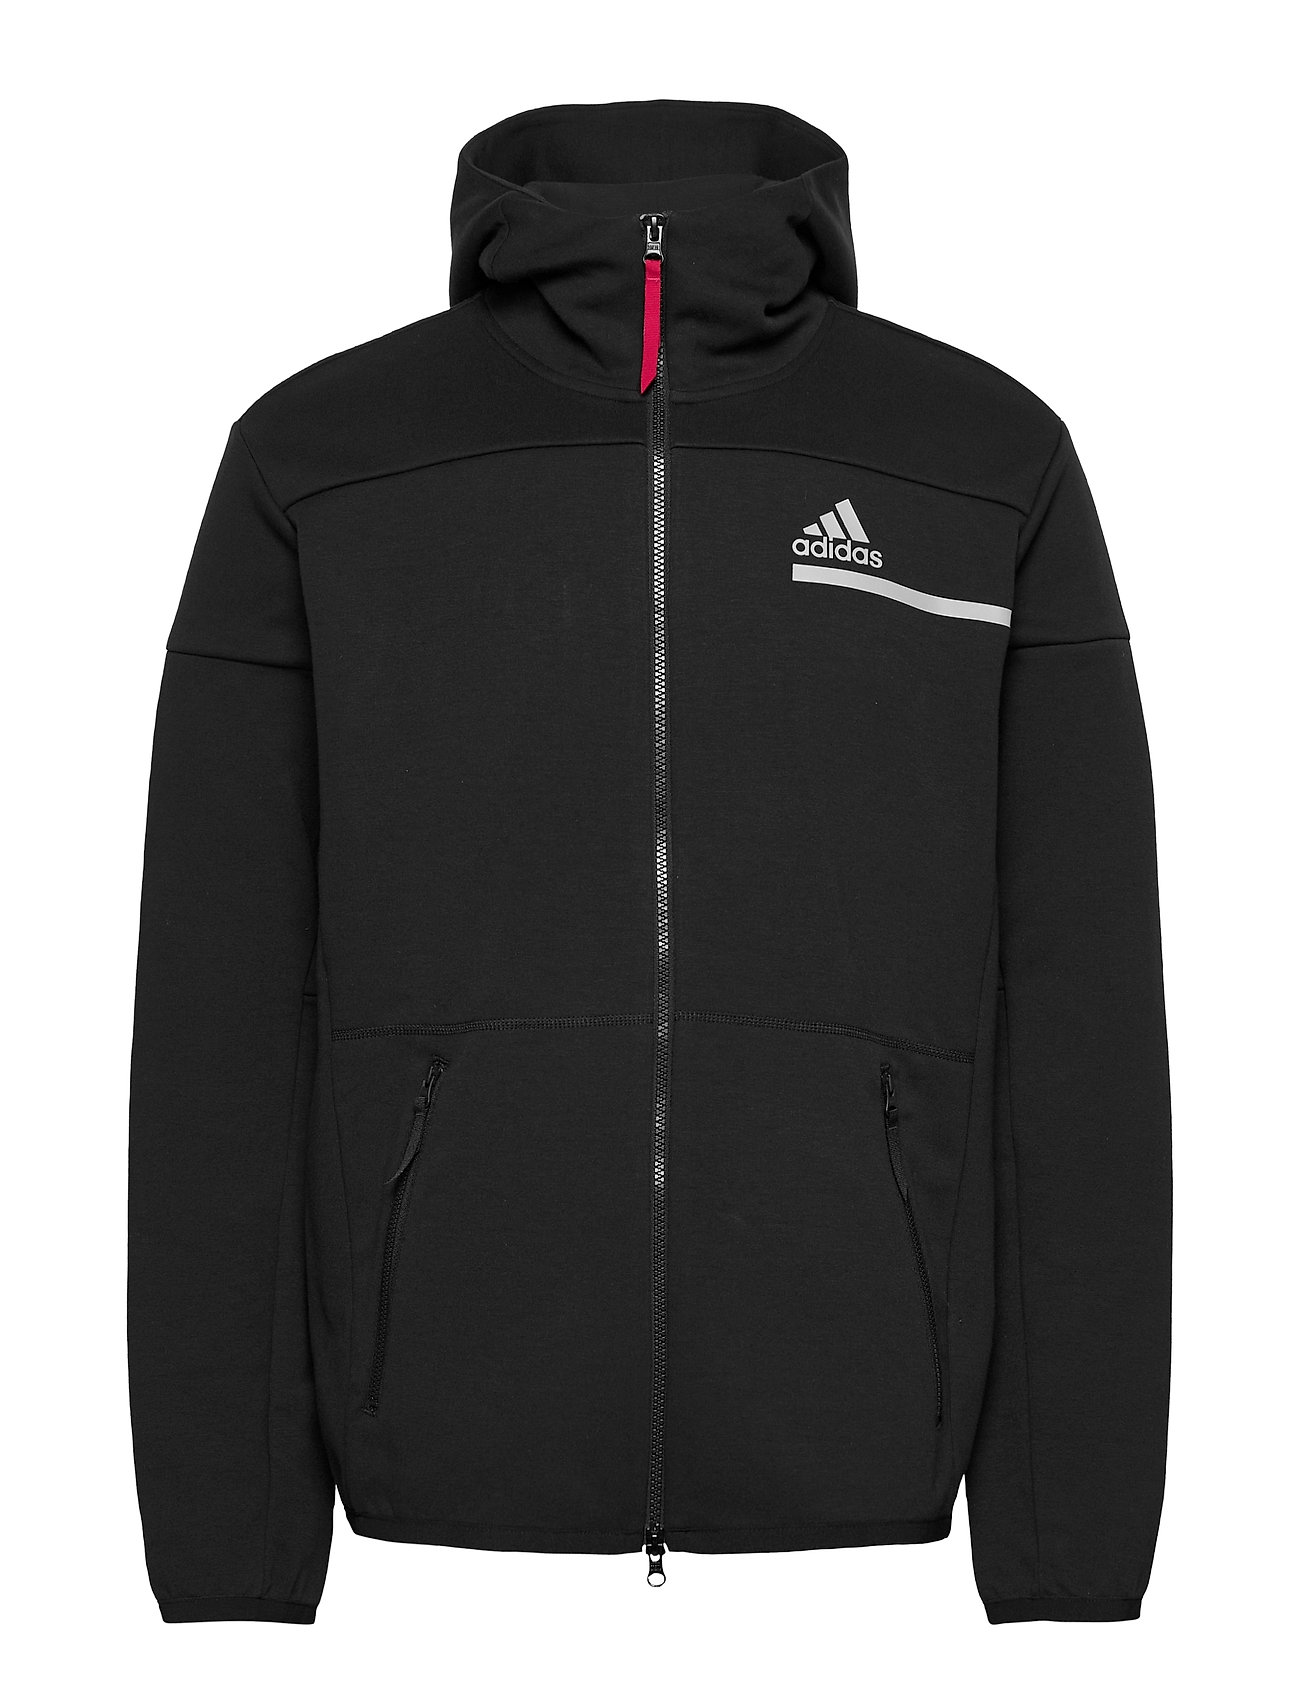 Image of Mens Tennis Zne Hoodie Hoodie Trøje Sort Adidas Performance (3455971391)